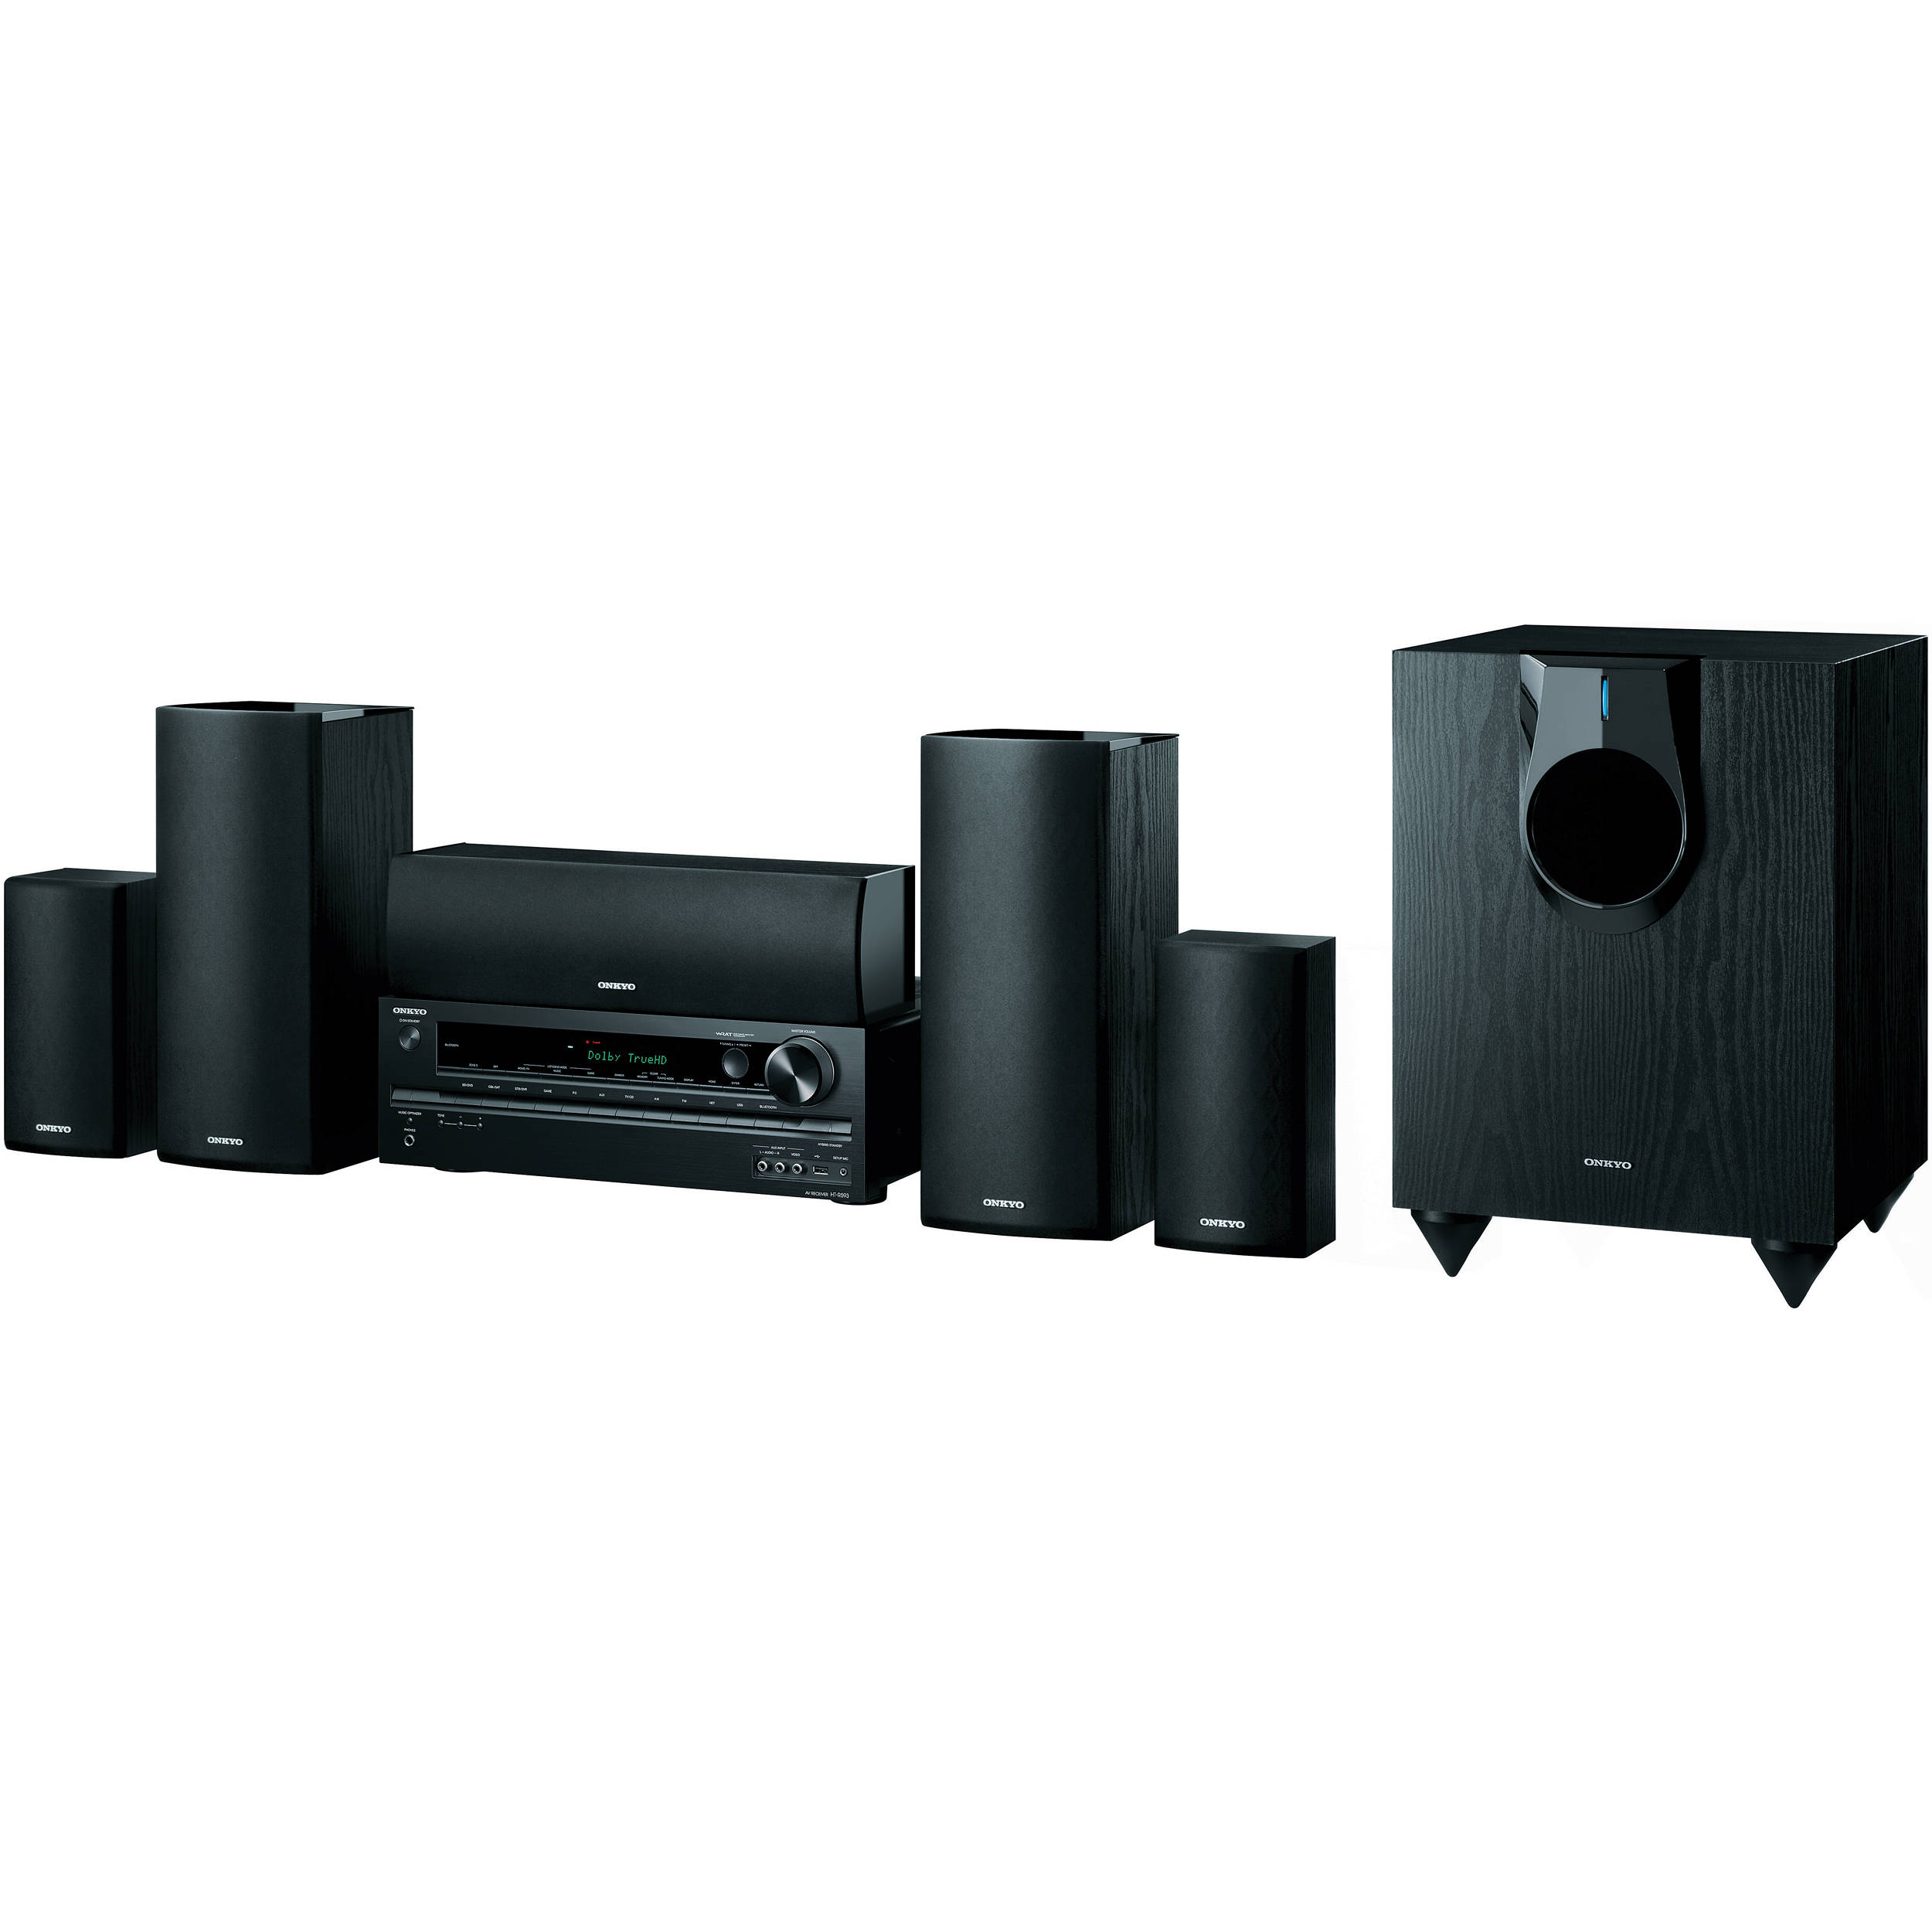 onkyo ht s5700 5 1 channel network home theater system ht s5700